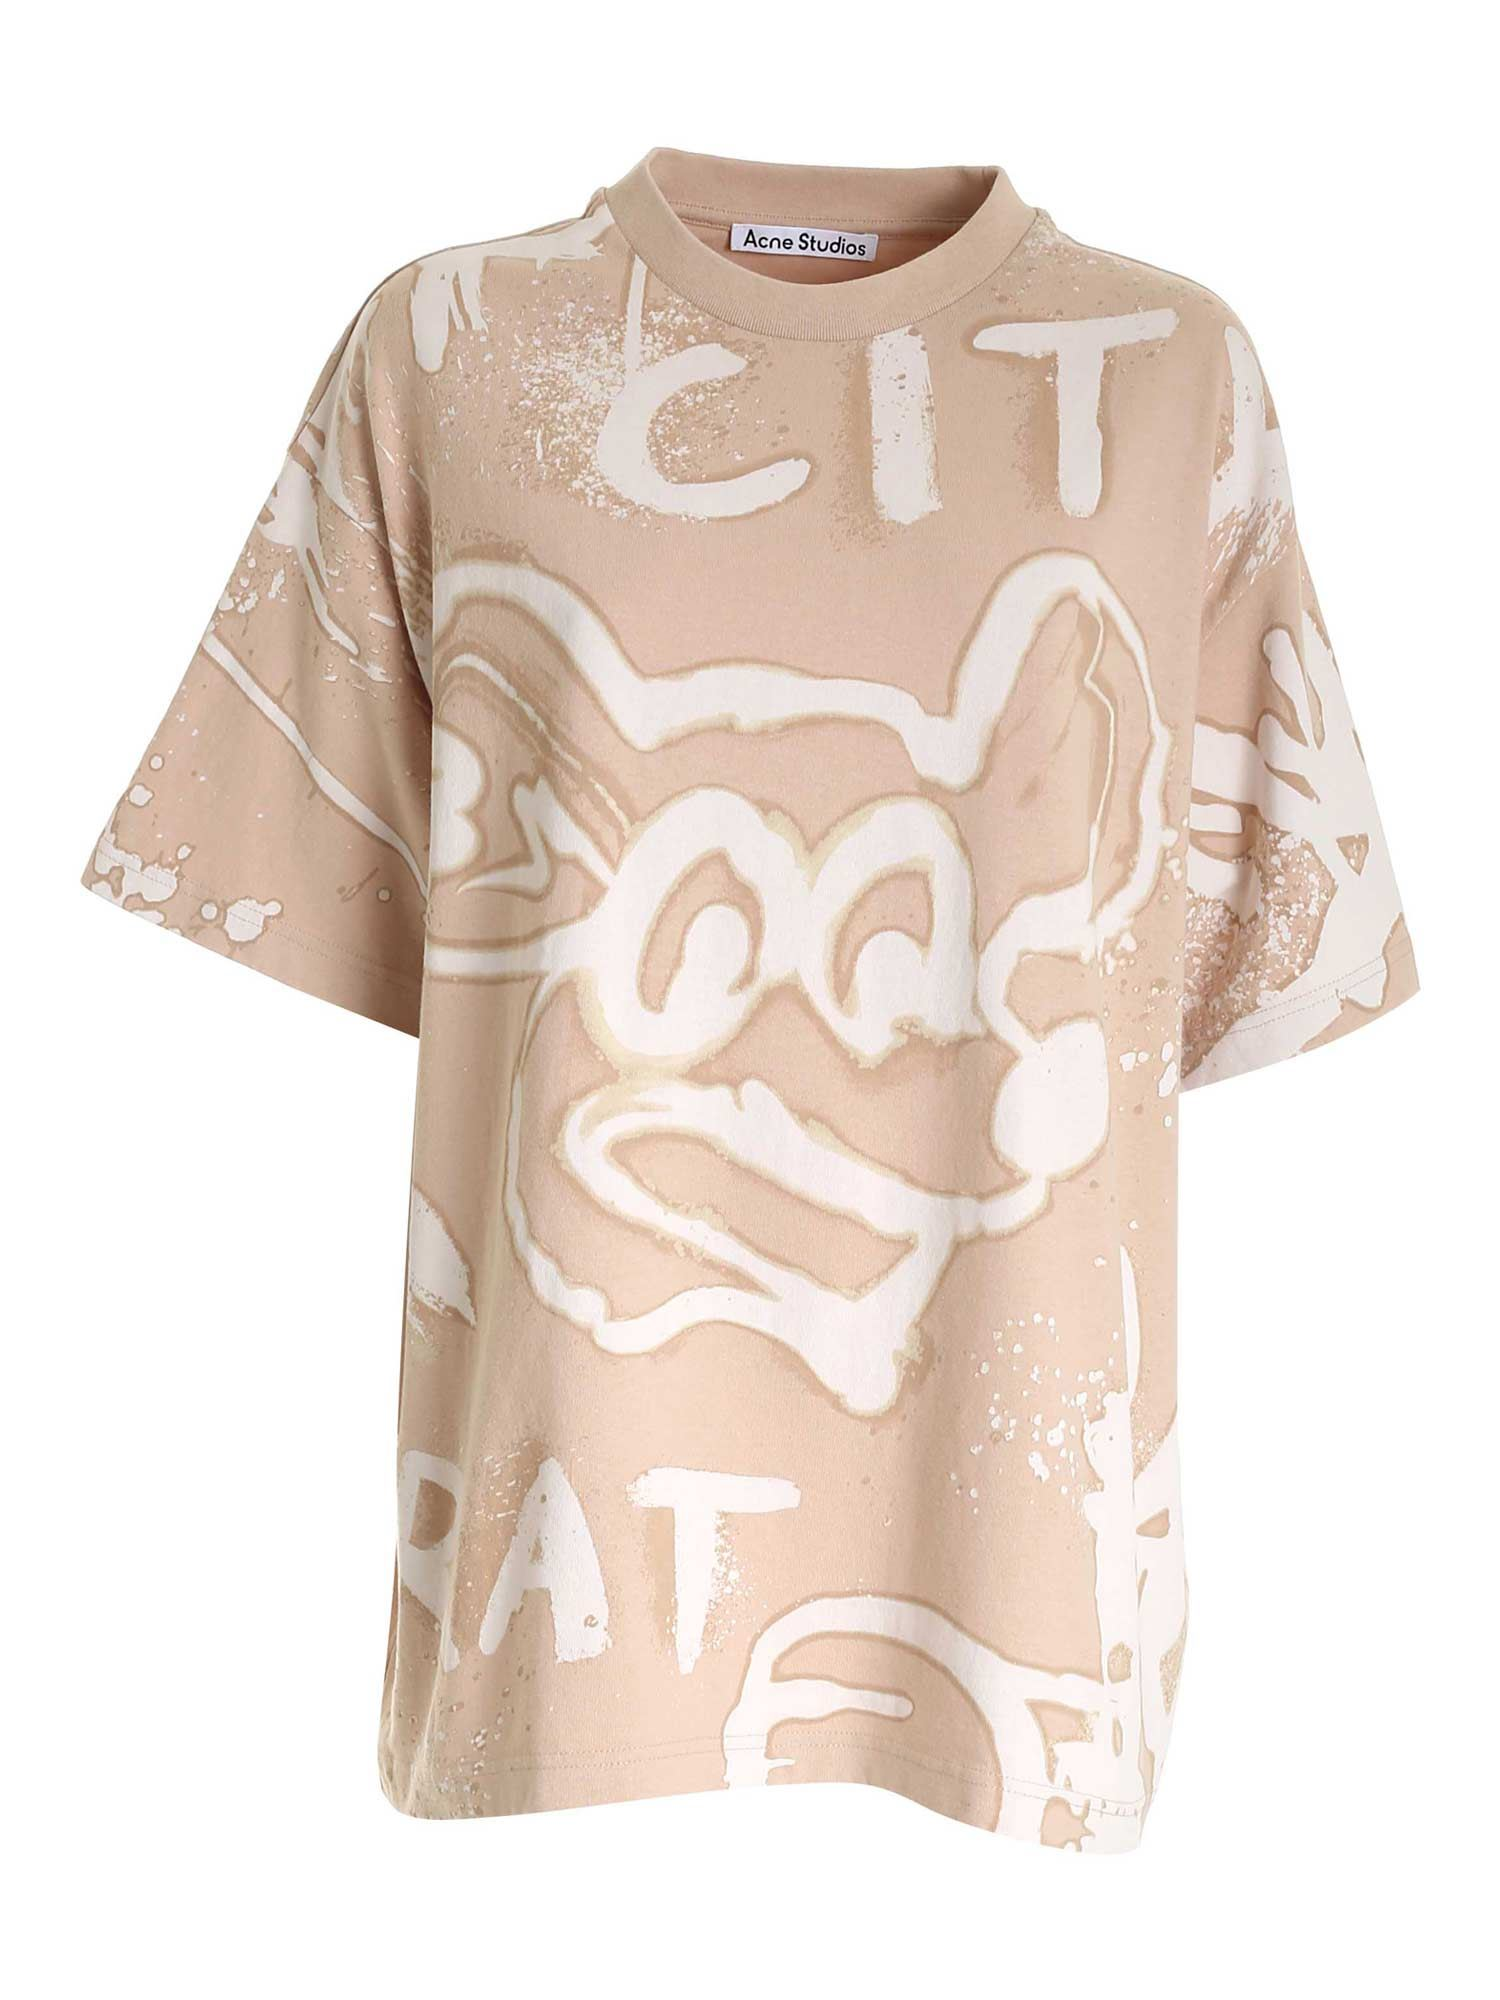 Acne Studios ALL-OVER PRINT T-SHIRT IN BEIGE